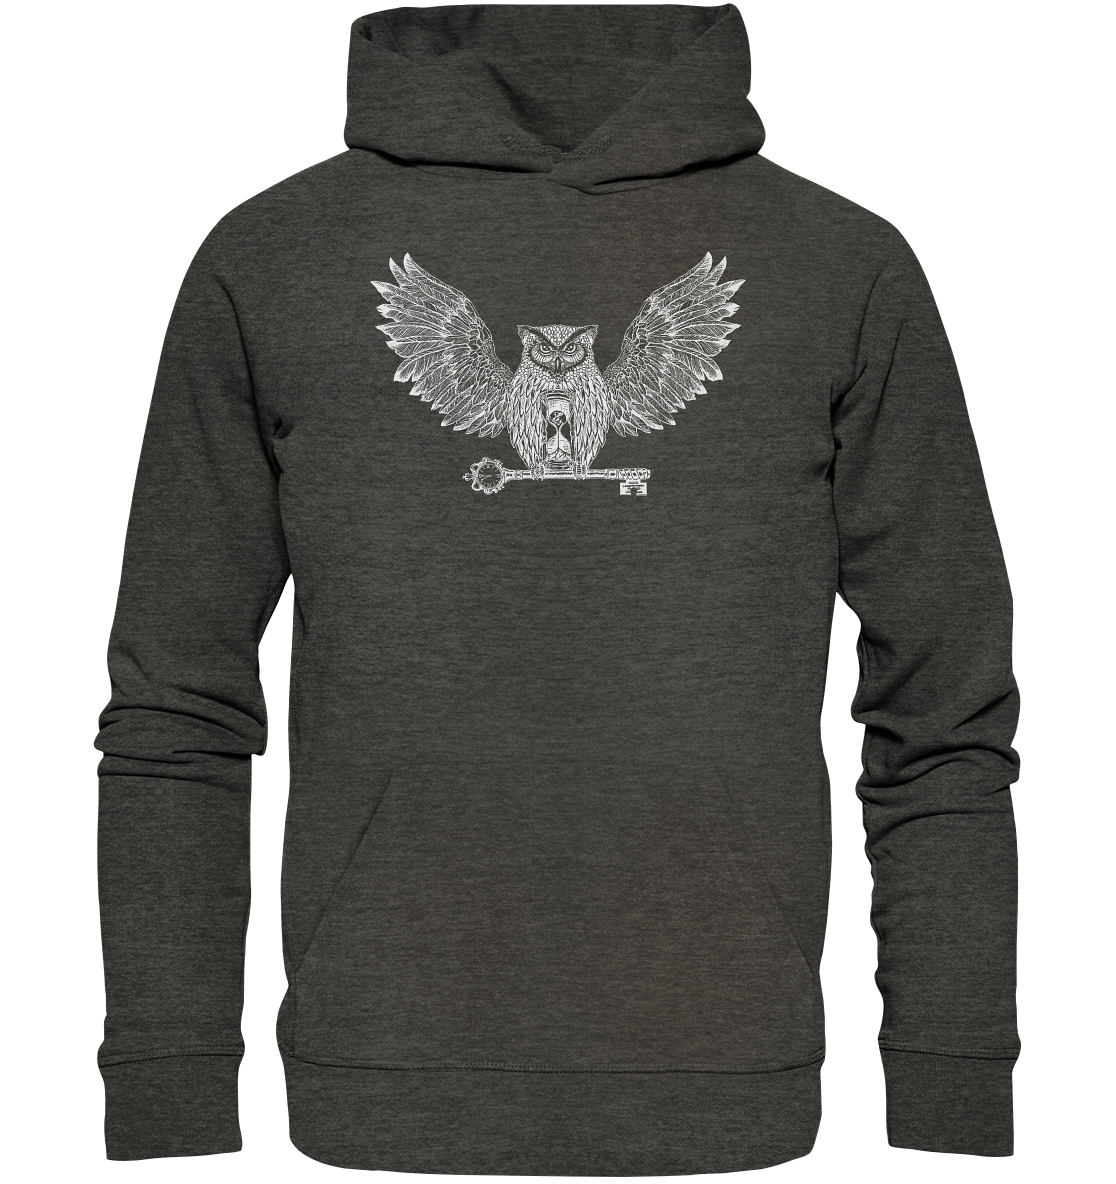 front-organic-hoodie-252625-1116x-4.png